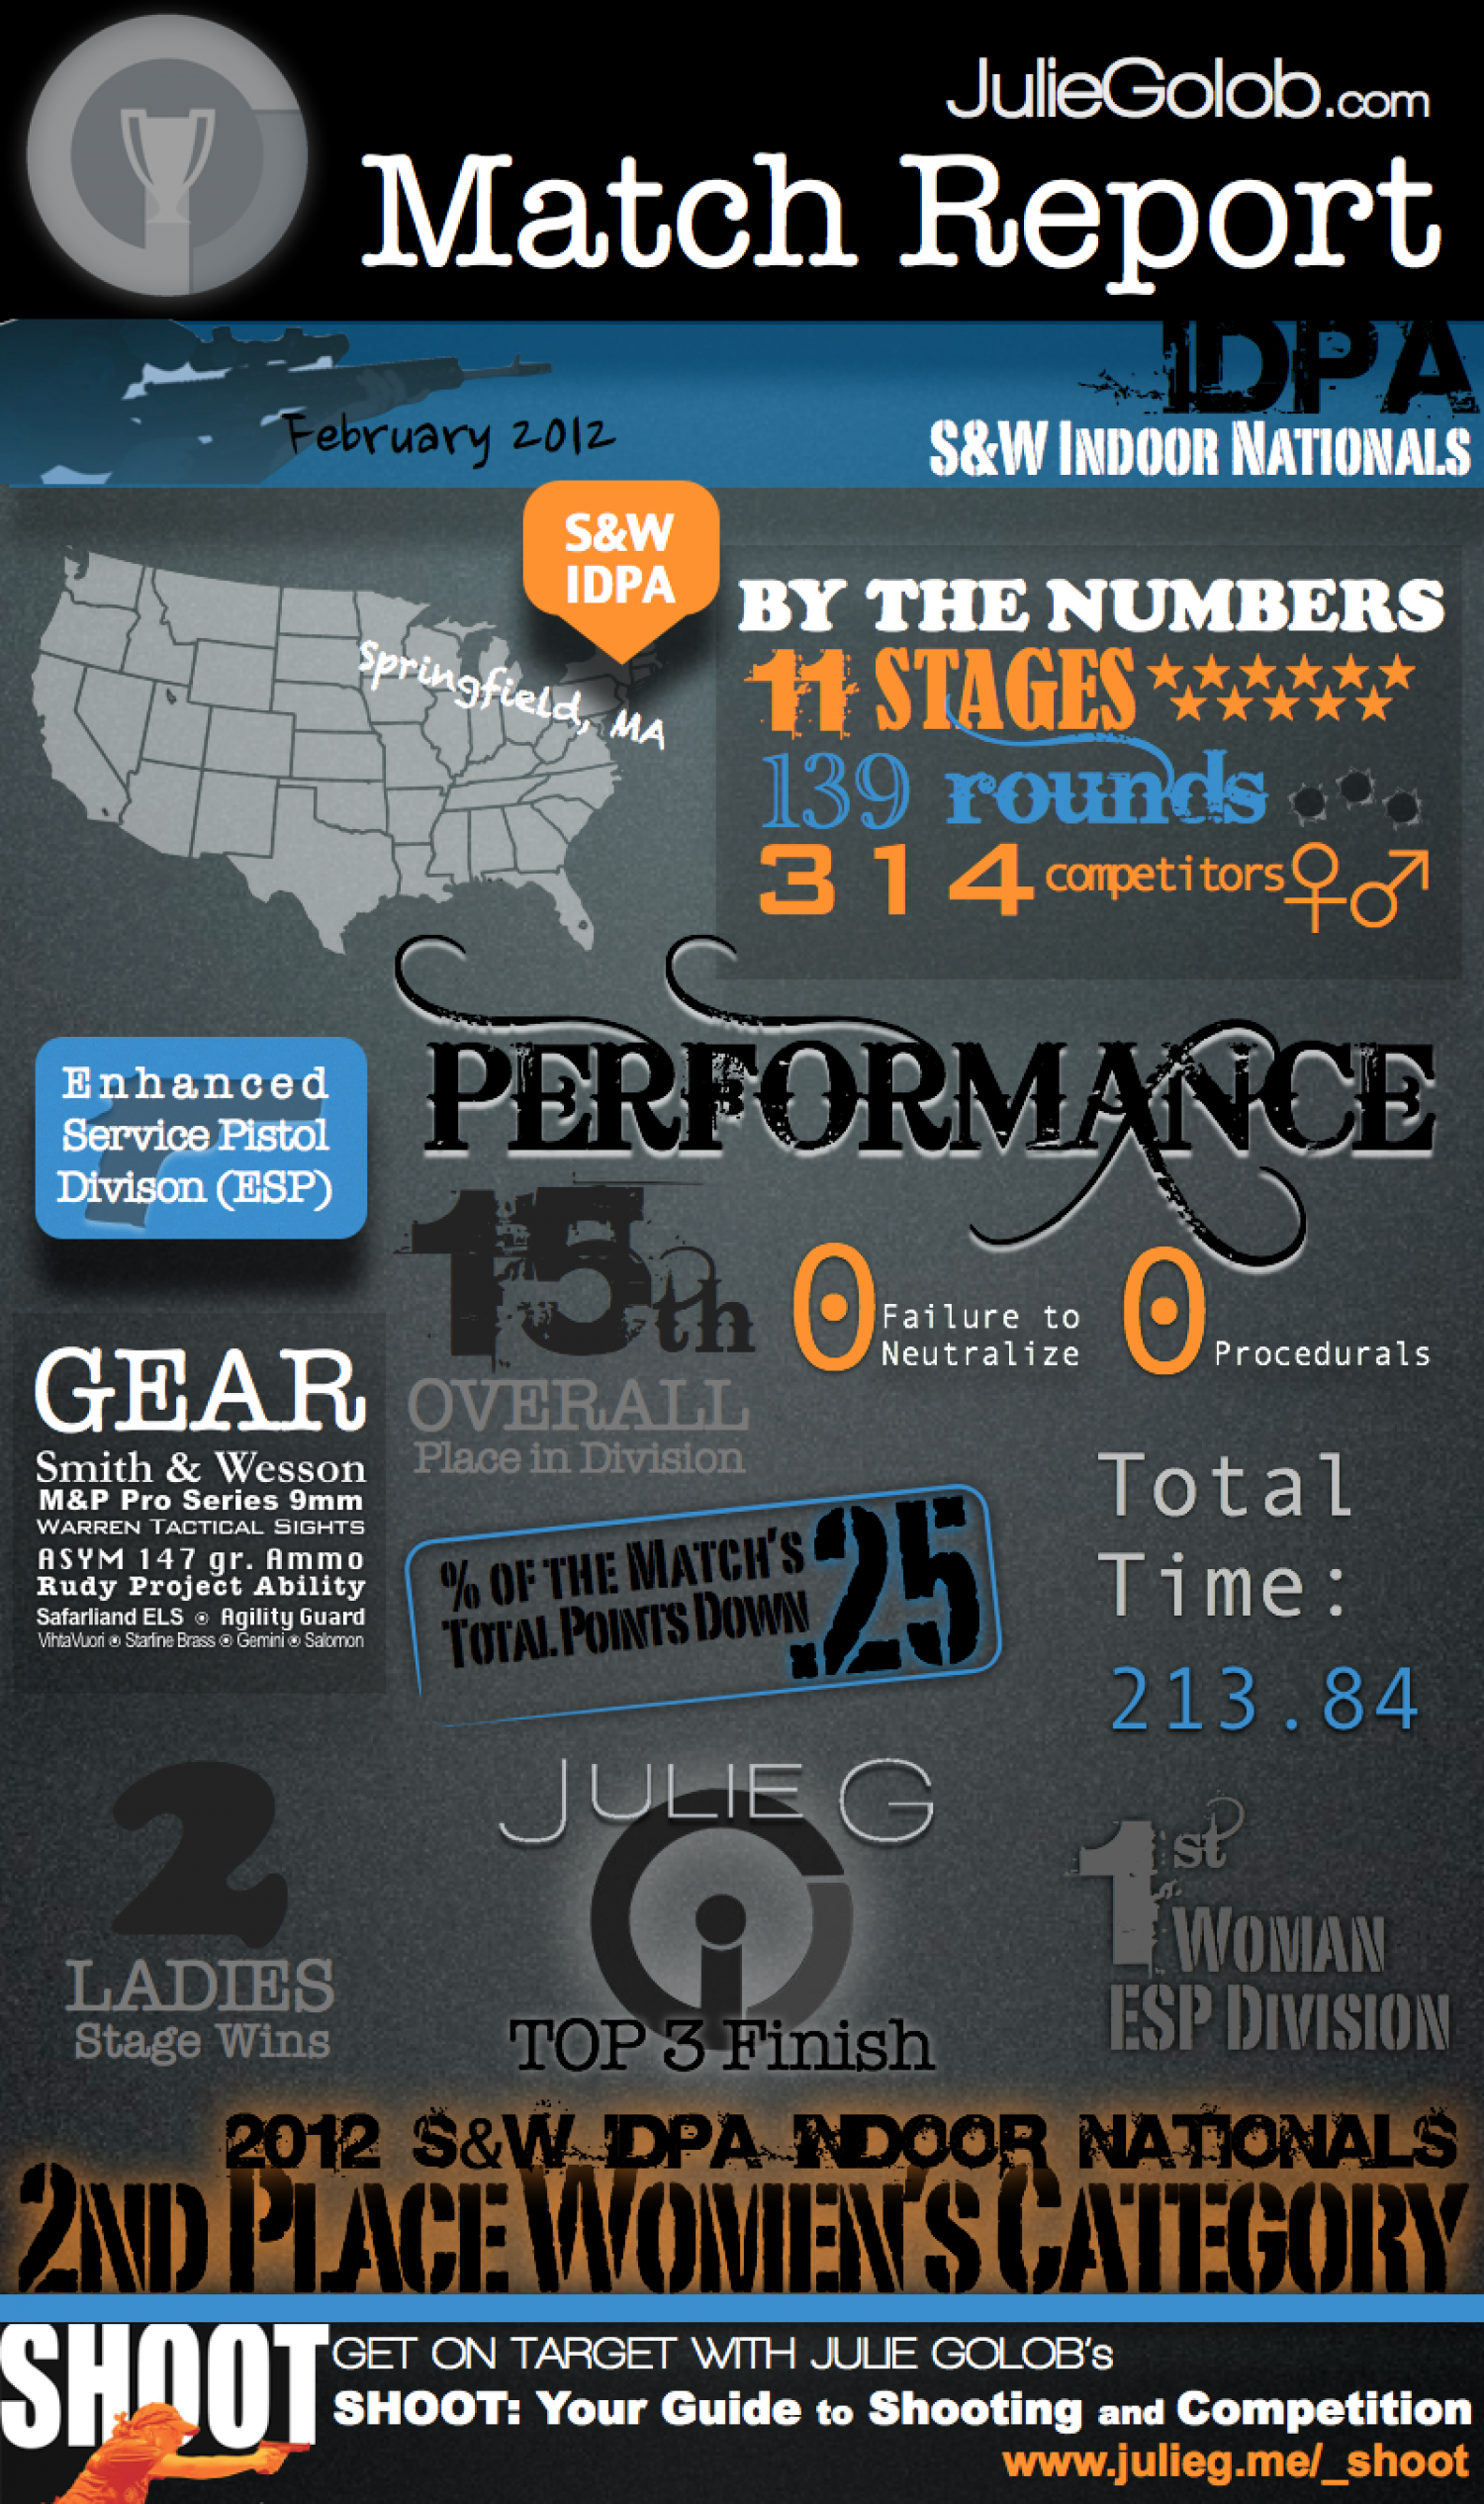 Match Report - Smith & Wesson IDPA Indoor Nationals Infographic